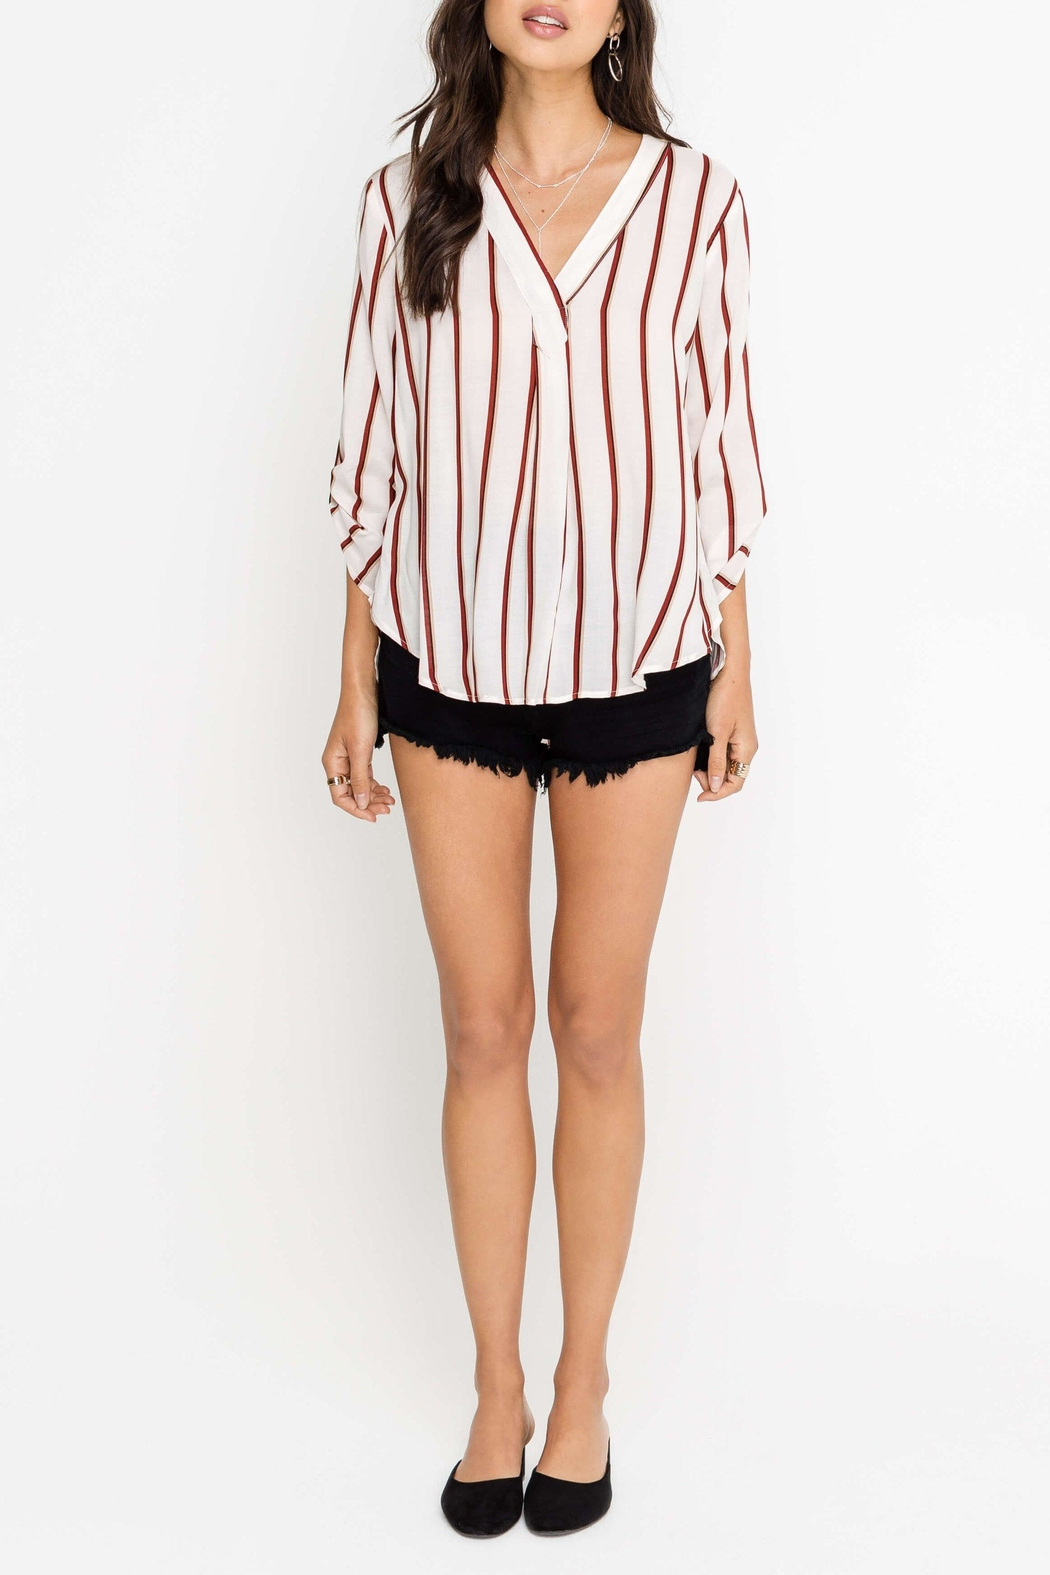 Lush Ella Striped Blouse - Front Cropped Image